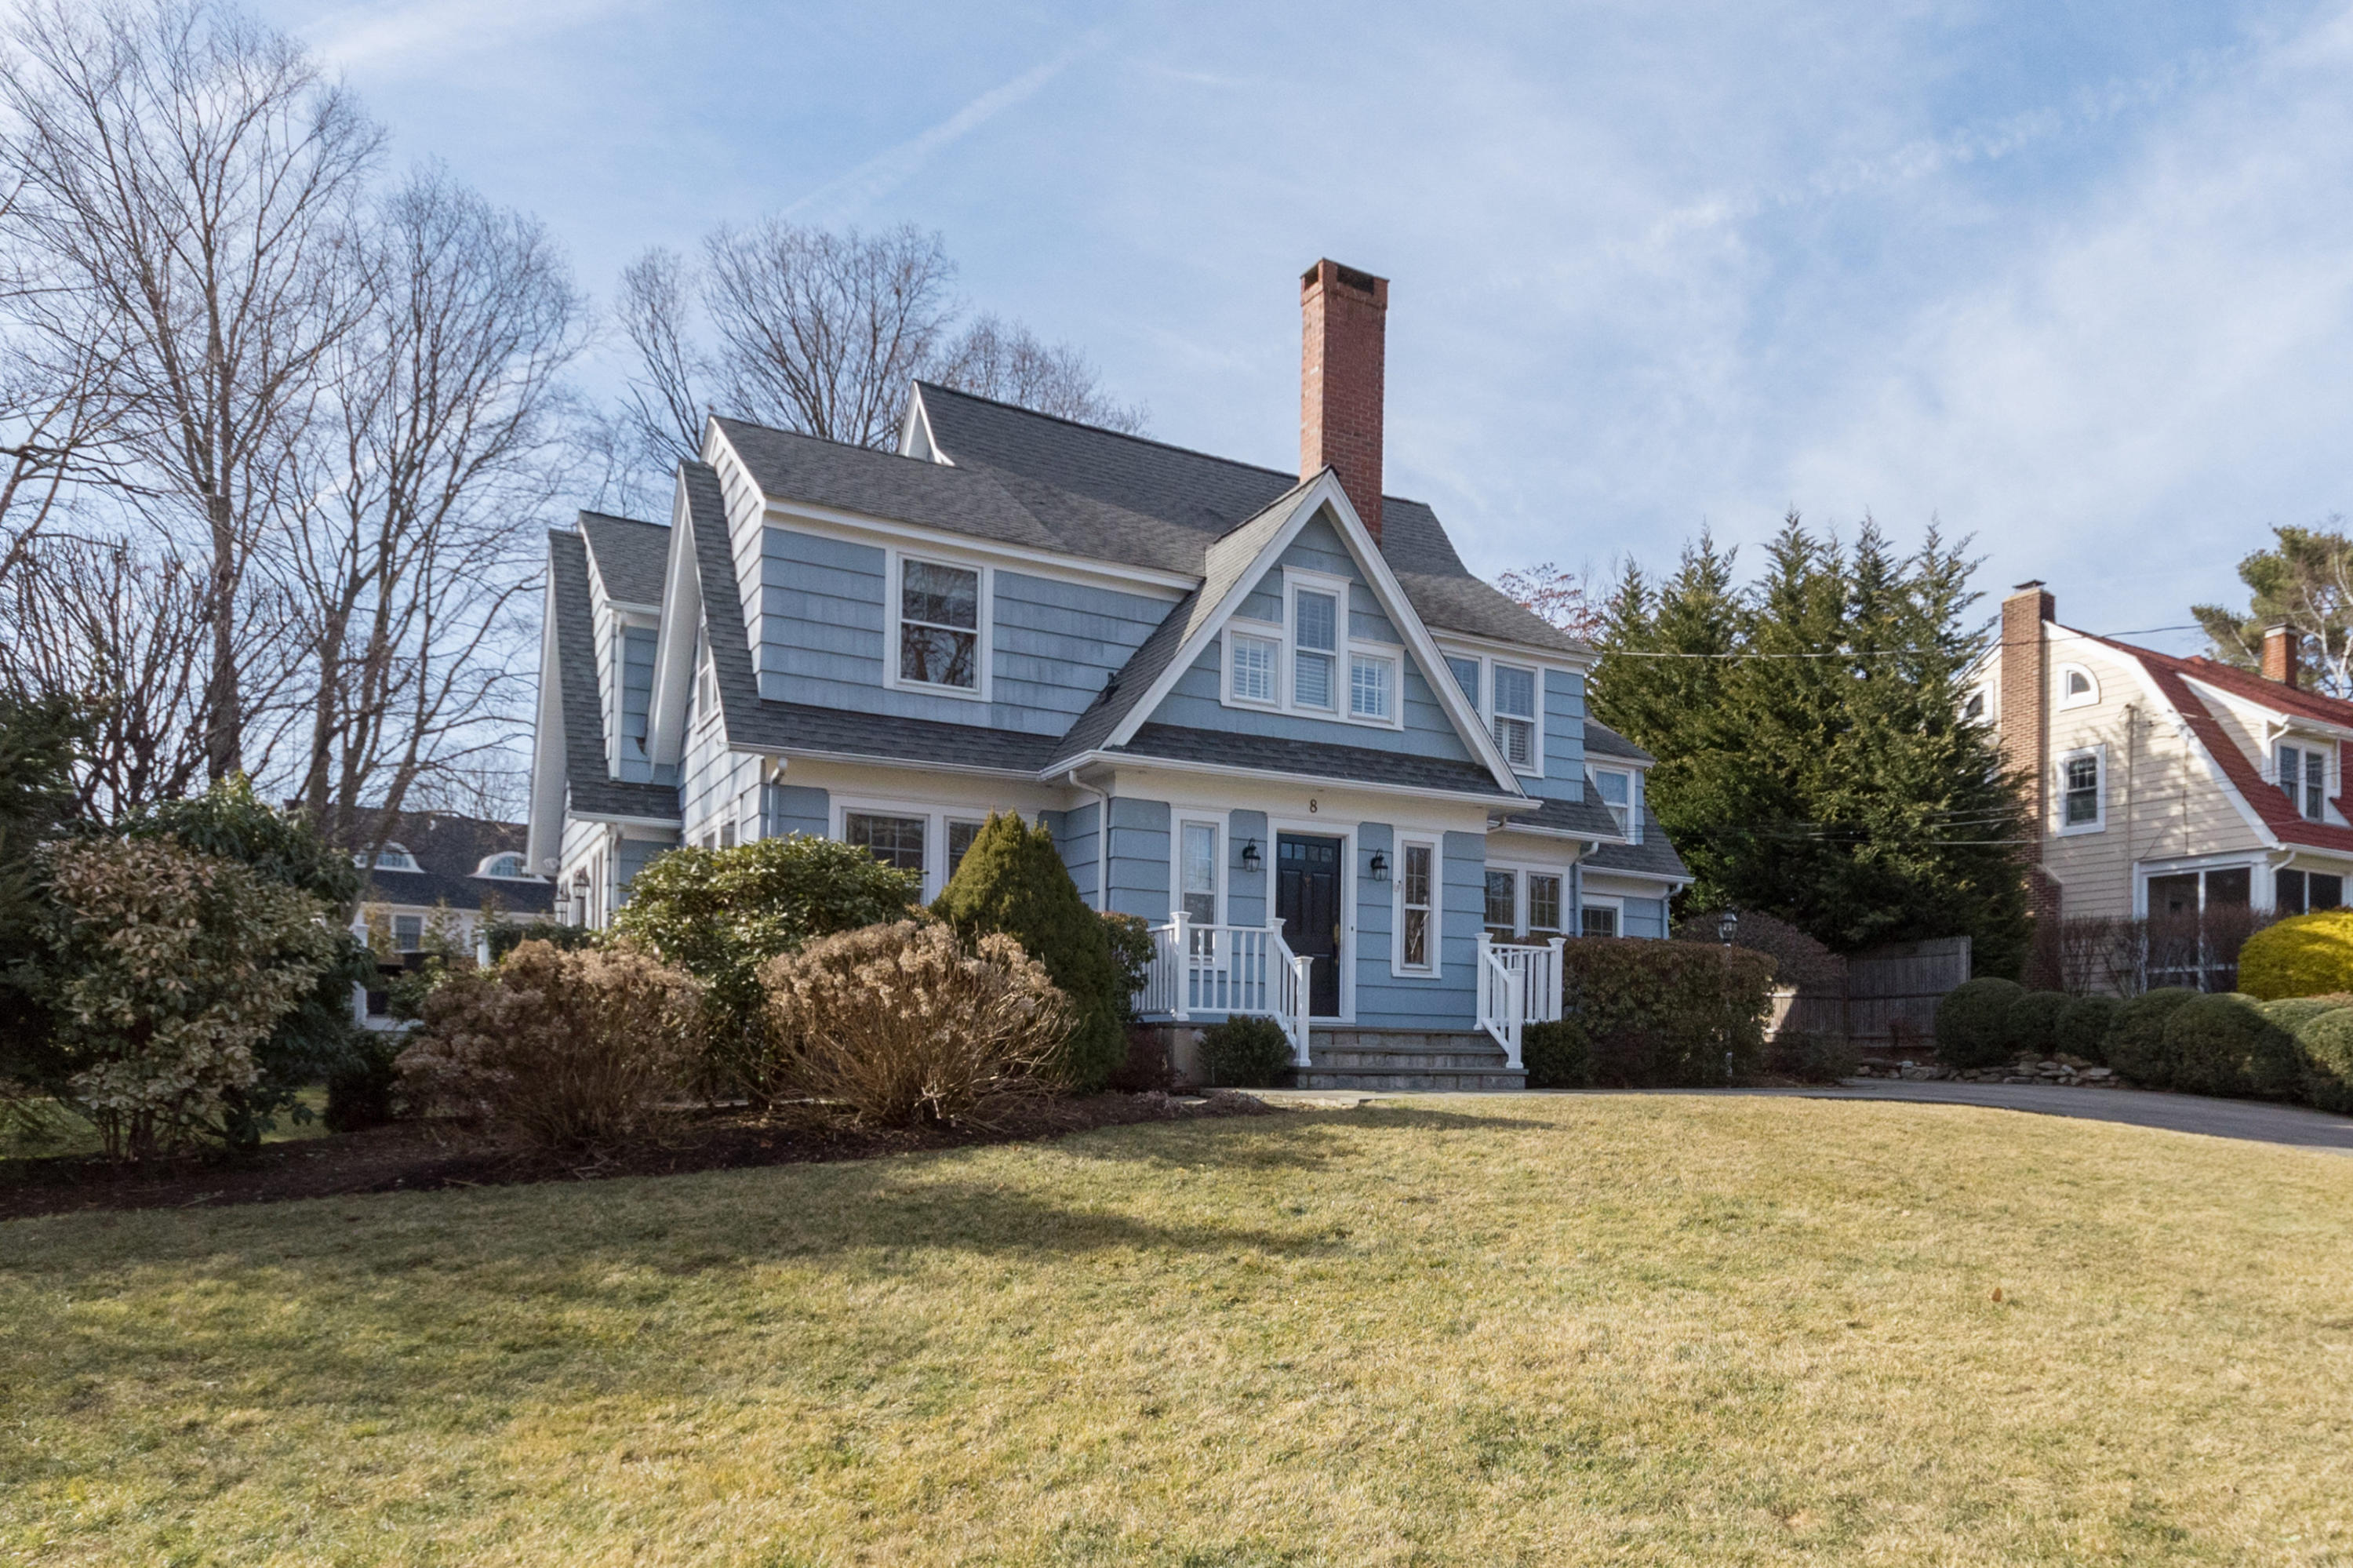 8 BEACH DRIVE, DARIEN, CT 06820